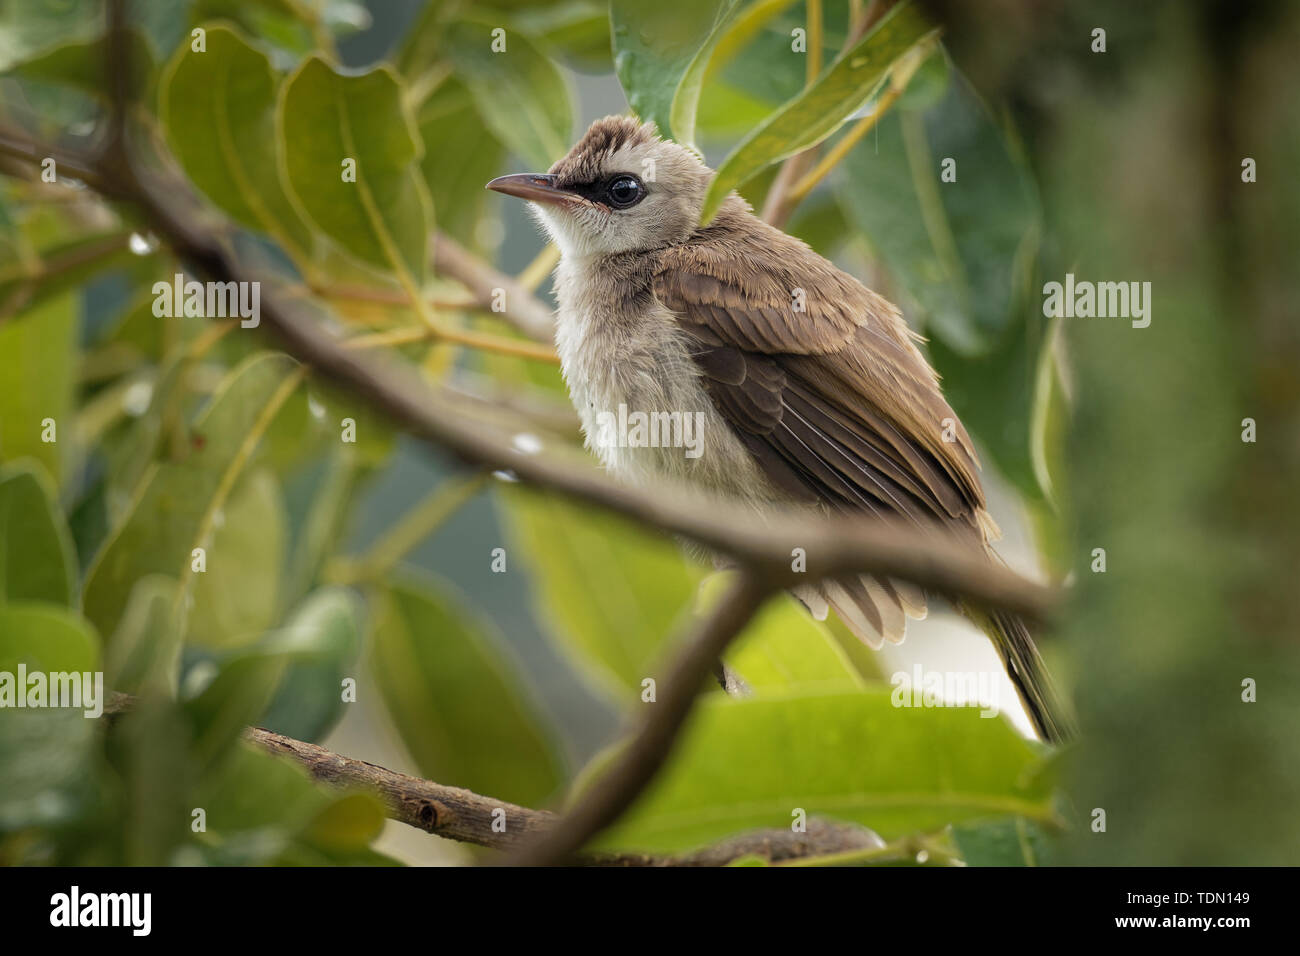 Yellow-vented Bulbul - Pycnonotus goiavier or eastern yellow-vented bulbul, member of bulbul family of passerine birds,  resident breeder in southeast Stock Photo